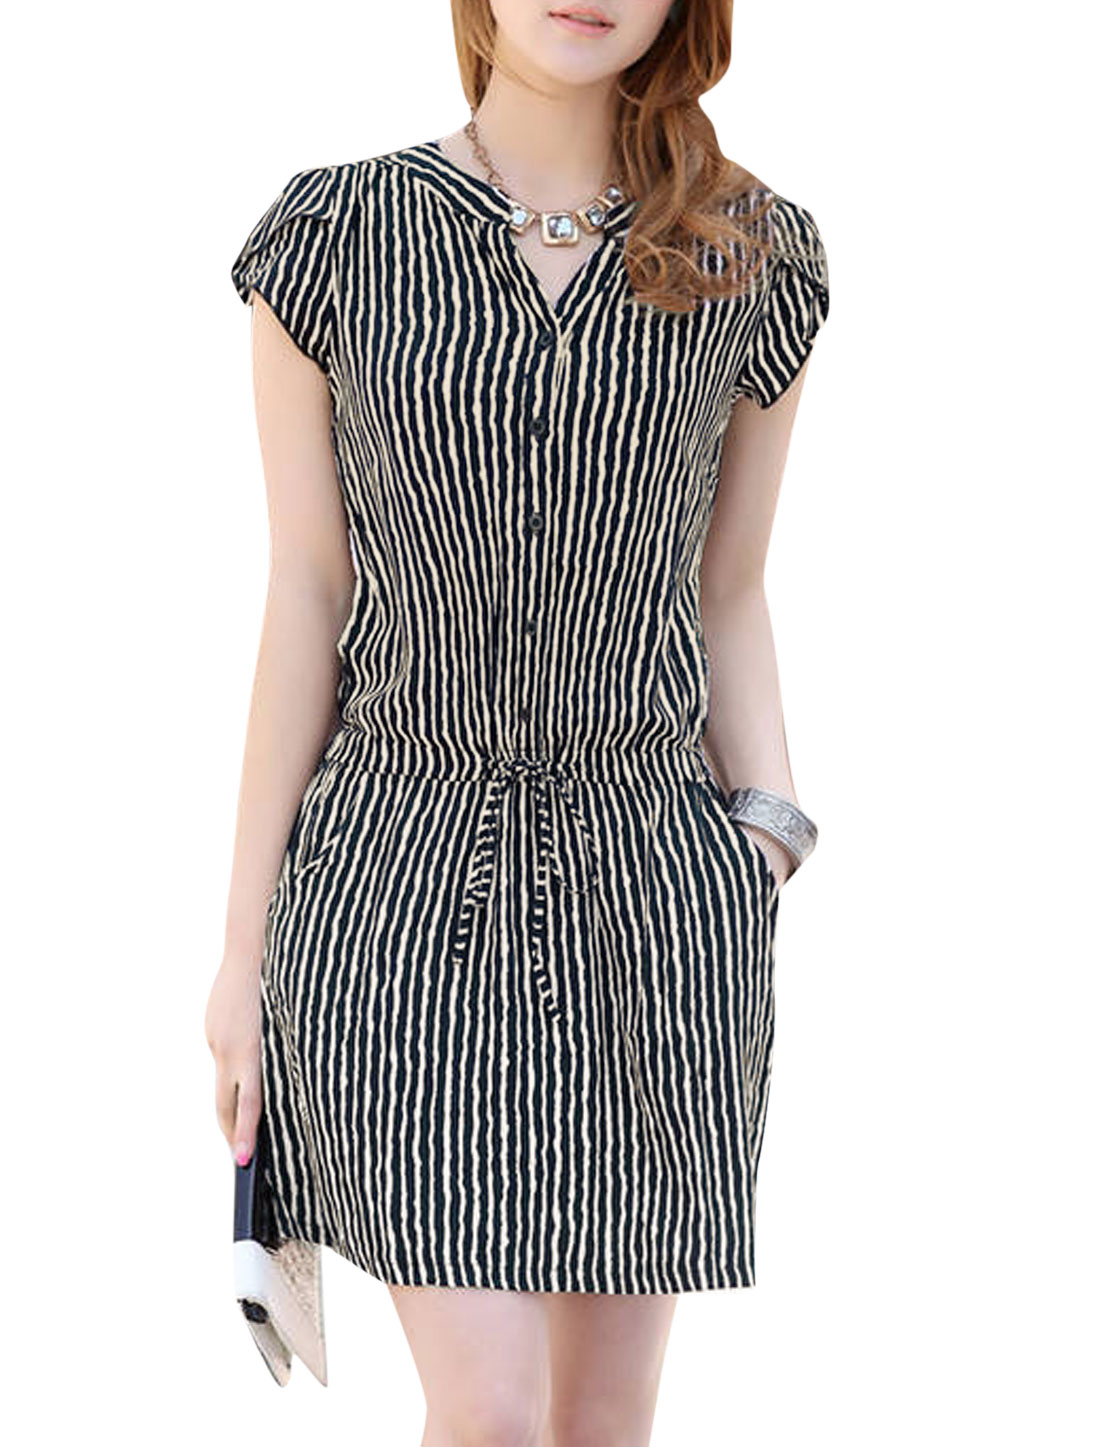 Women Split Neck Petal Sleeve Vertical Stripes Pattern NEW Dress Beige Navy Blue M